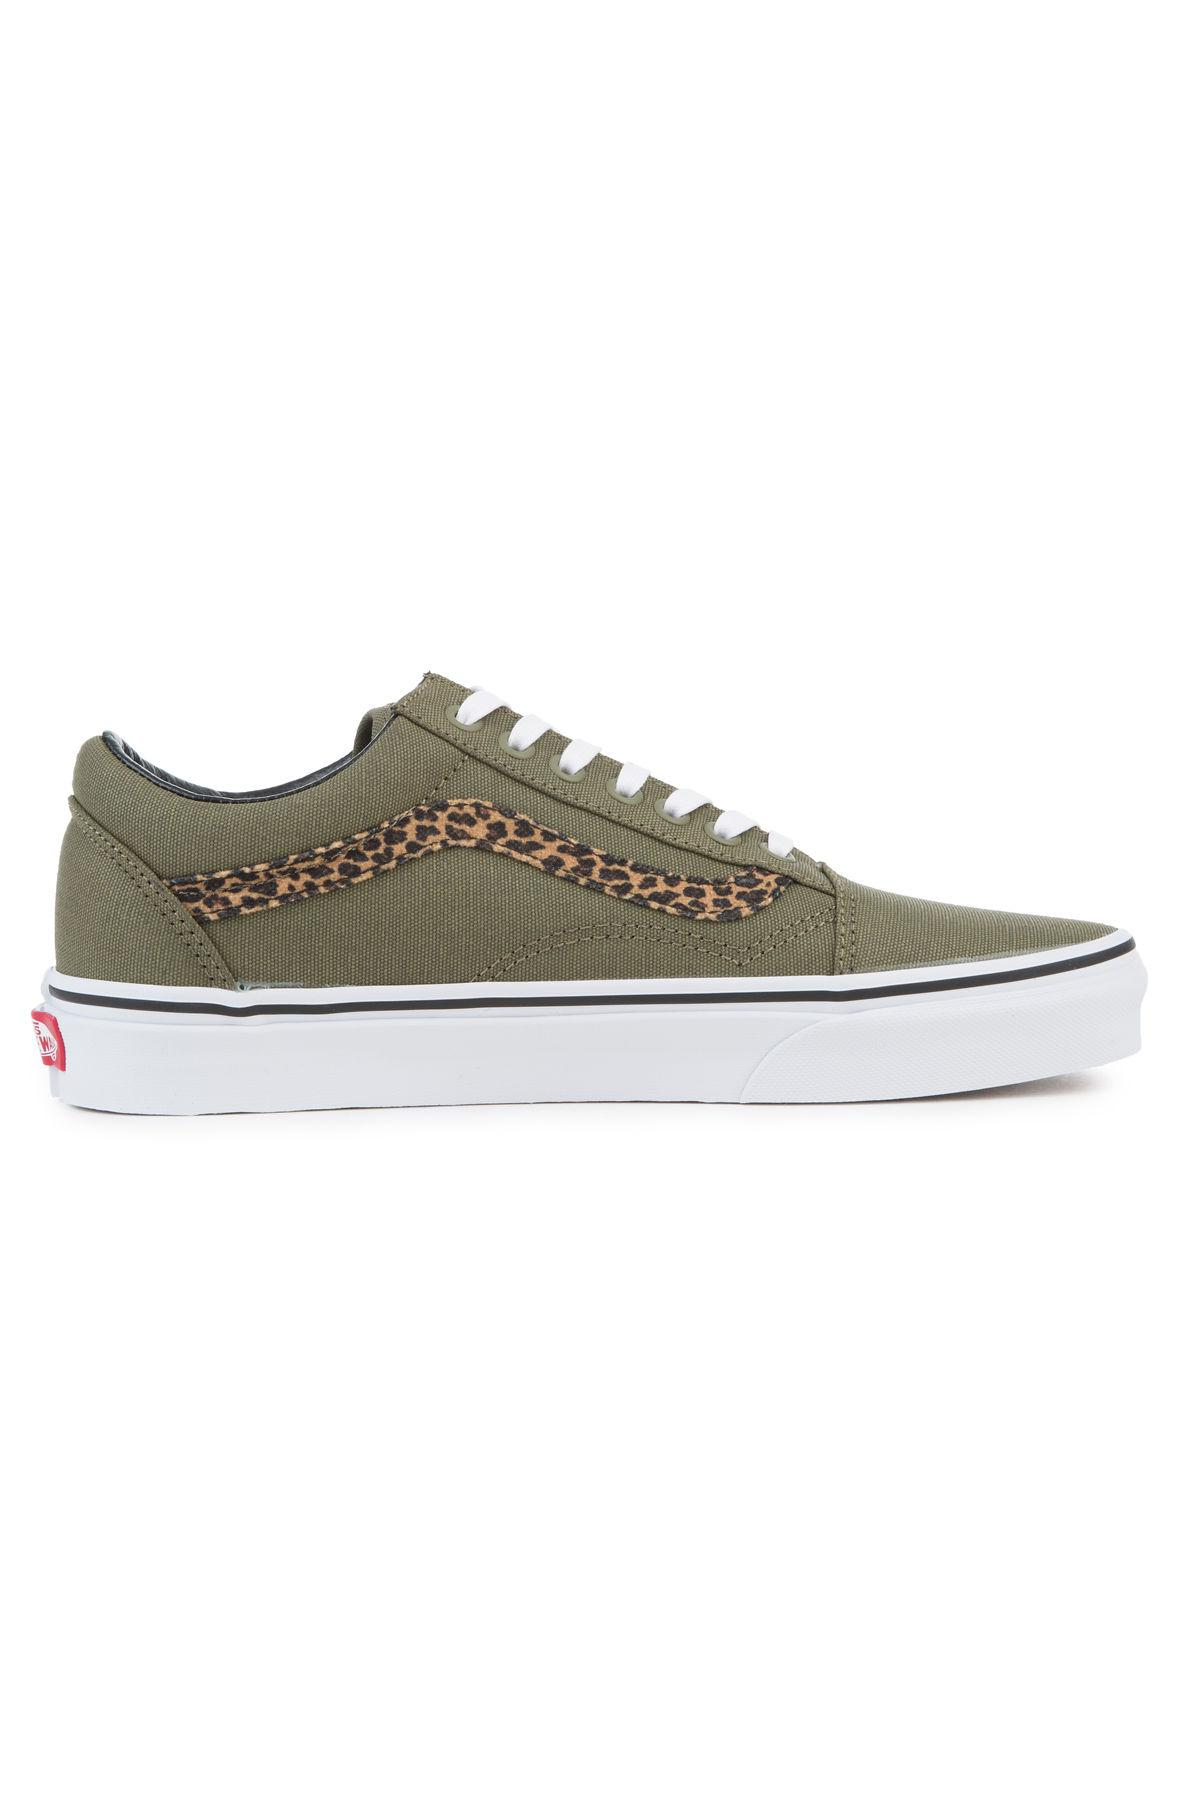 f44eaab222be96 Lyst - Vans The Women s Mini Leopard Old Skool In Army Green And ...